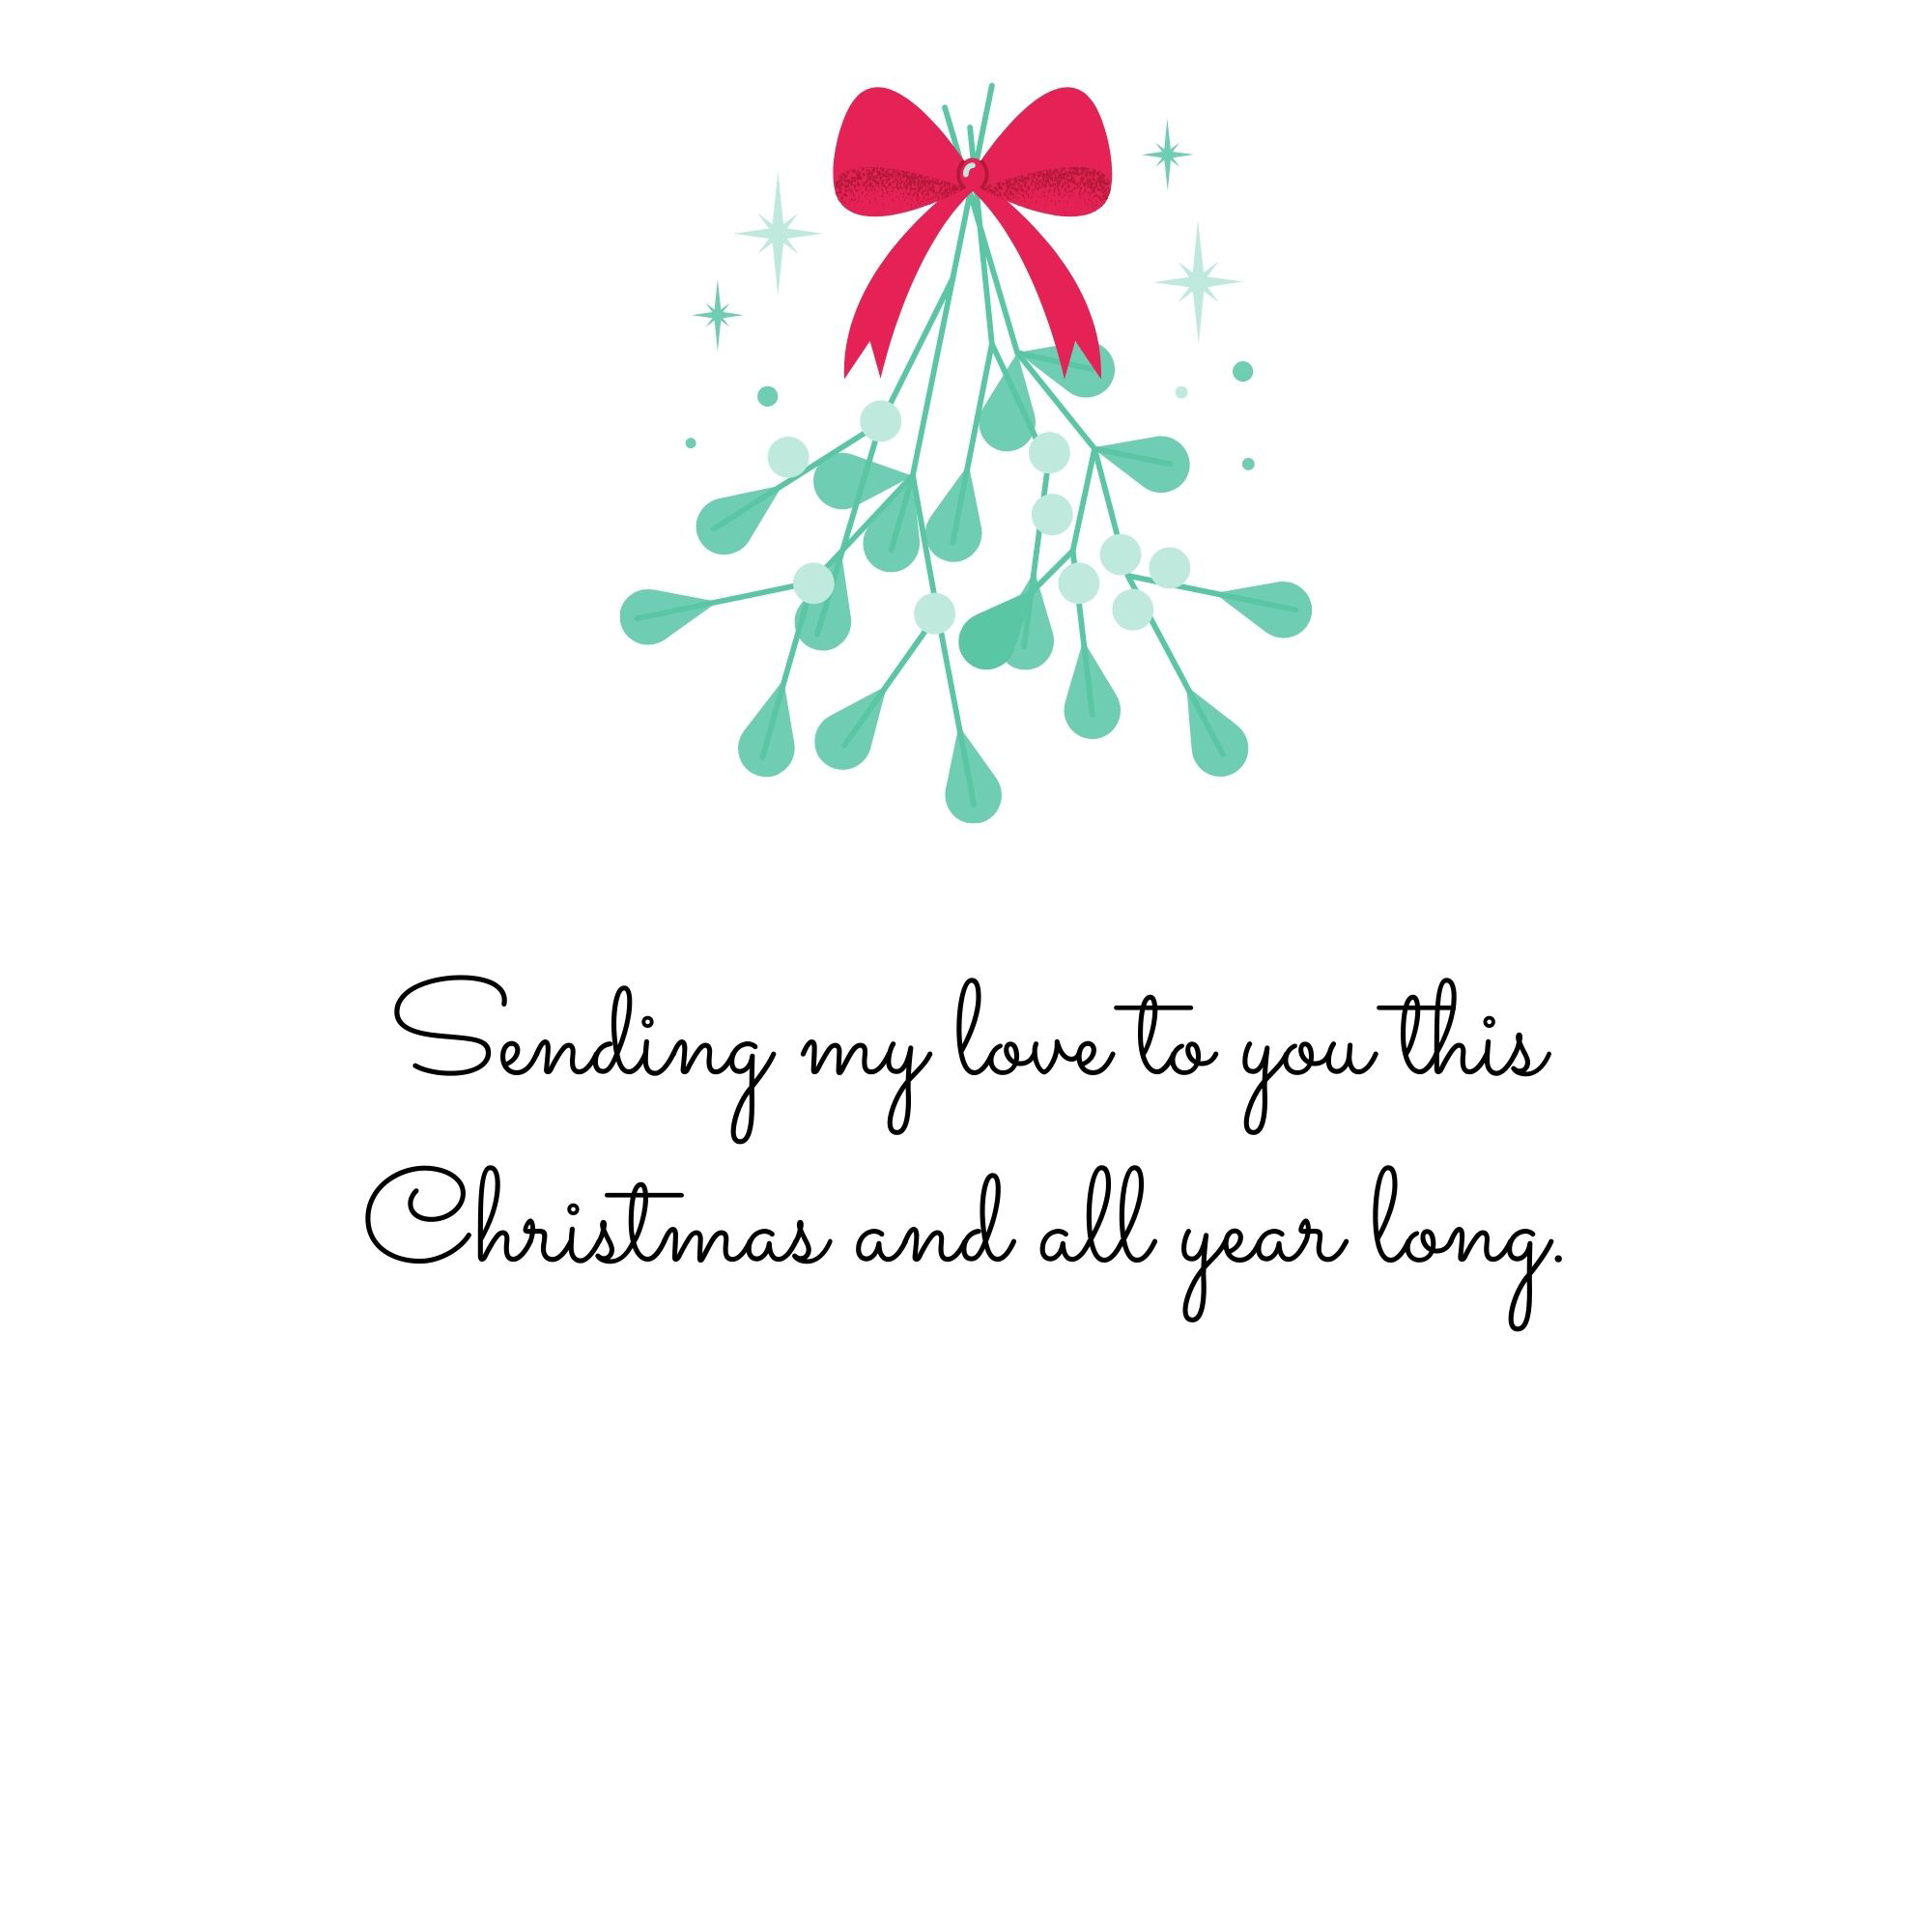 Sending my love to you this Christmas and all year long